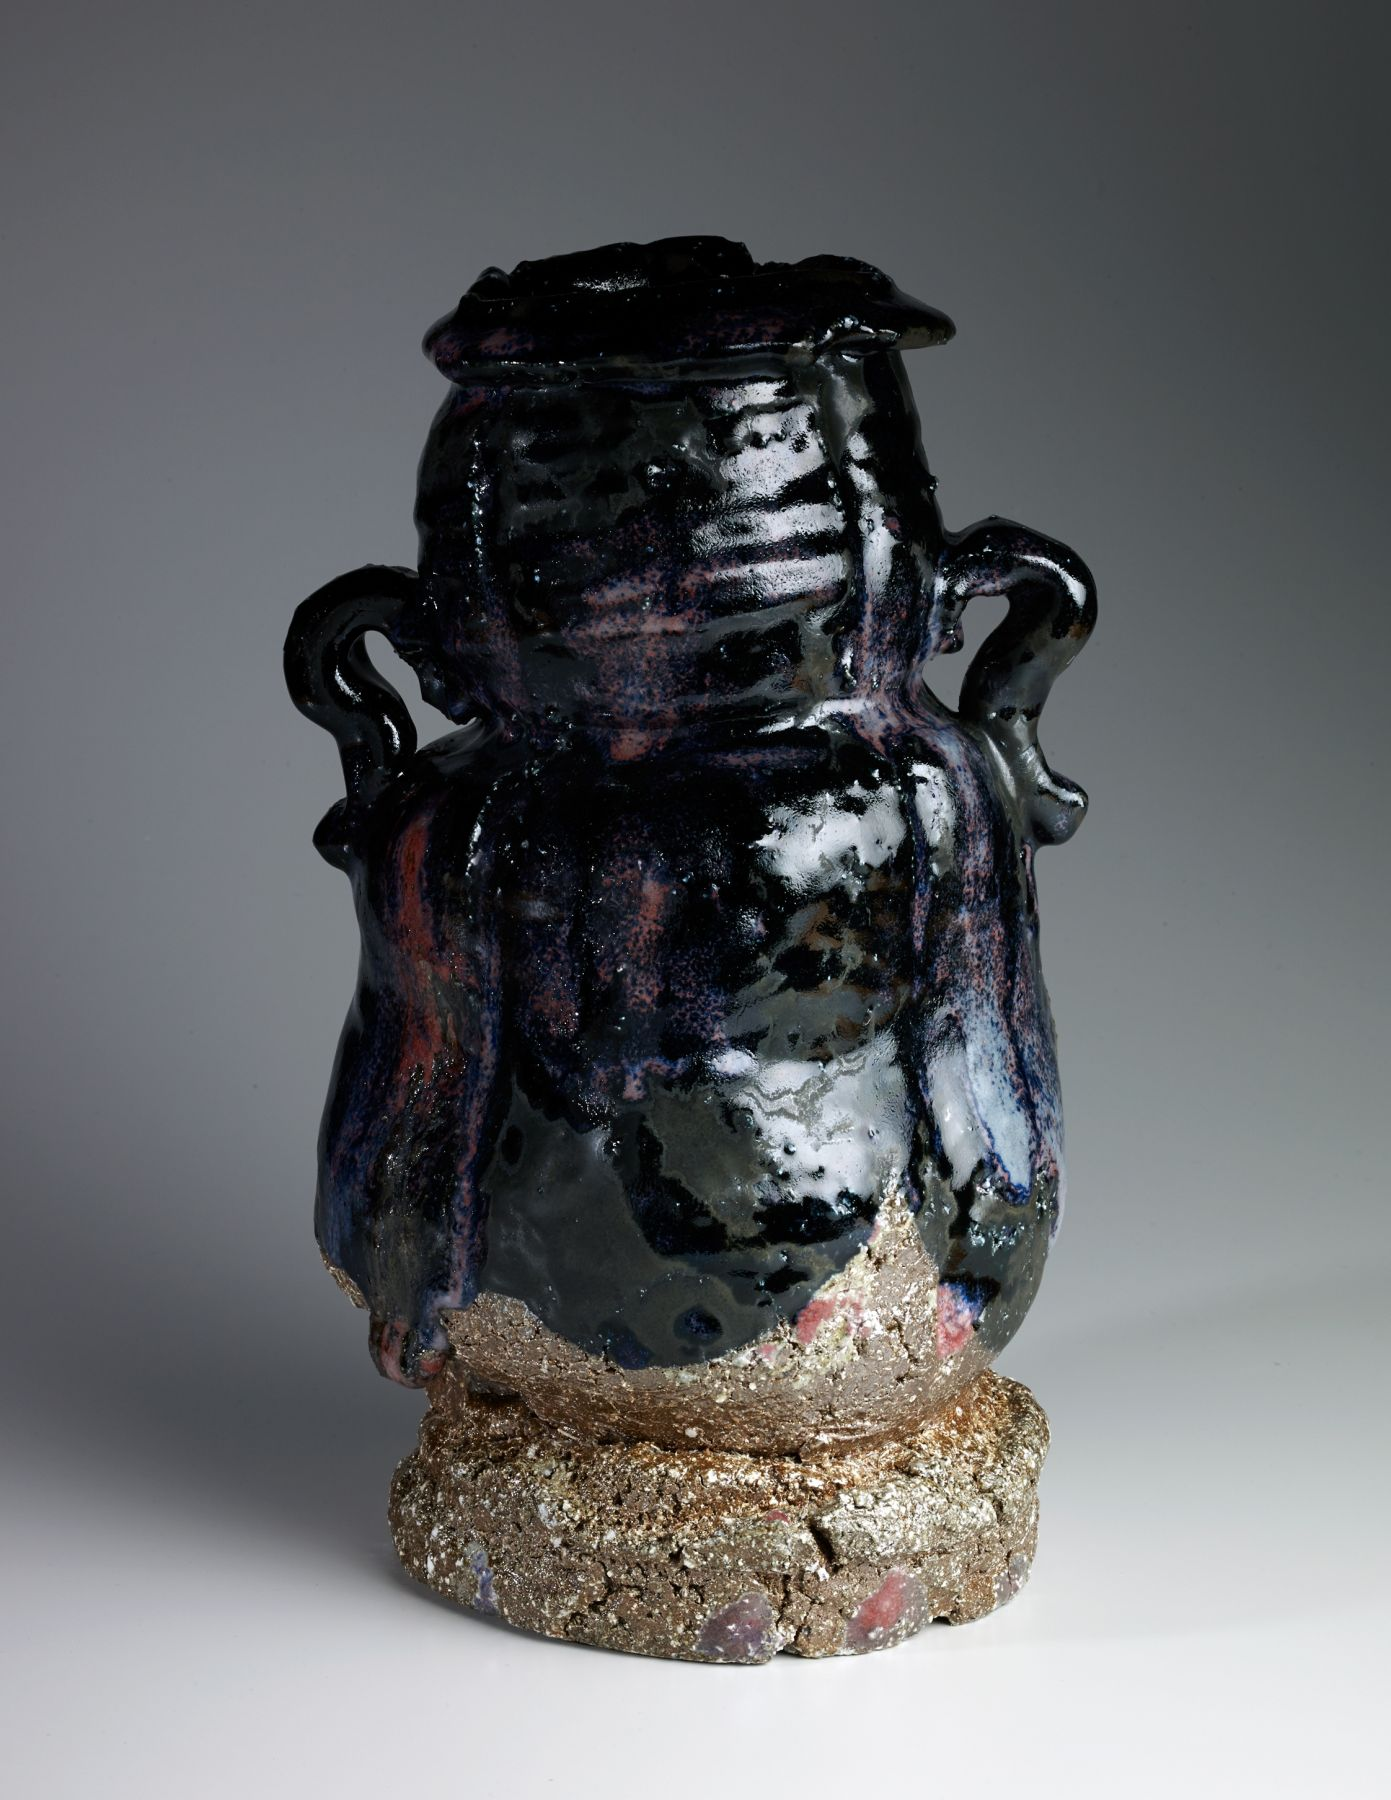 Tanaka, Sajiro, Tanaka Sajiro, shinsha, copper, red, glazed, glaze, glazed stoneware, stoneware, handle, vase, raised, neck, highlights, glossy, black, 2016, contemporary, traditional, ceramics, Japanese, Japan, Japanese ceramics, contemporary Japanese ceramics, pottery, tea, art gallery, art, New York, NYC